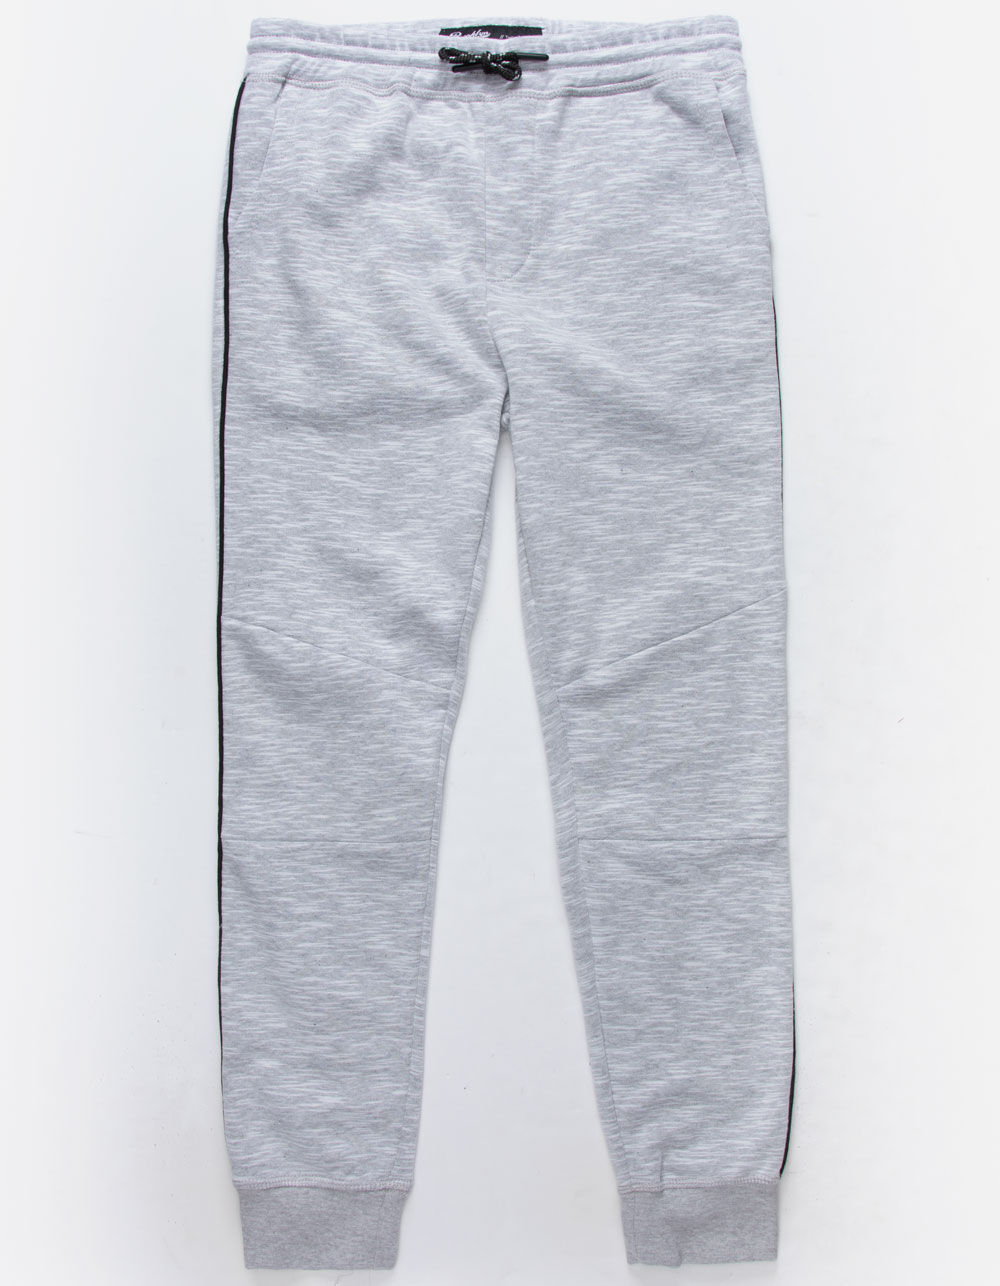 Image of BROOKLYN CLOTH CONTRAST PIPING LIGHT GRAY BOYS JOGGER PANTS